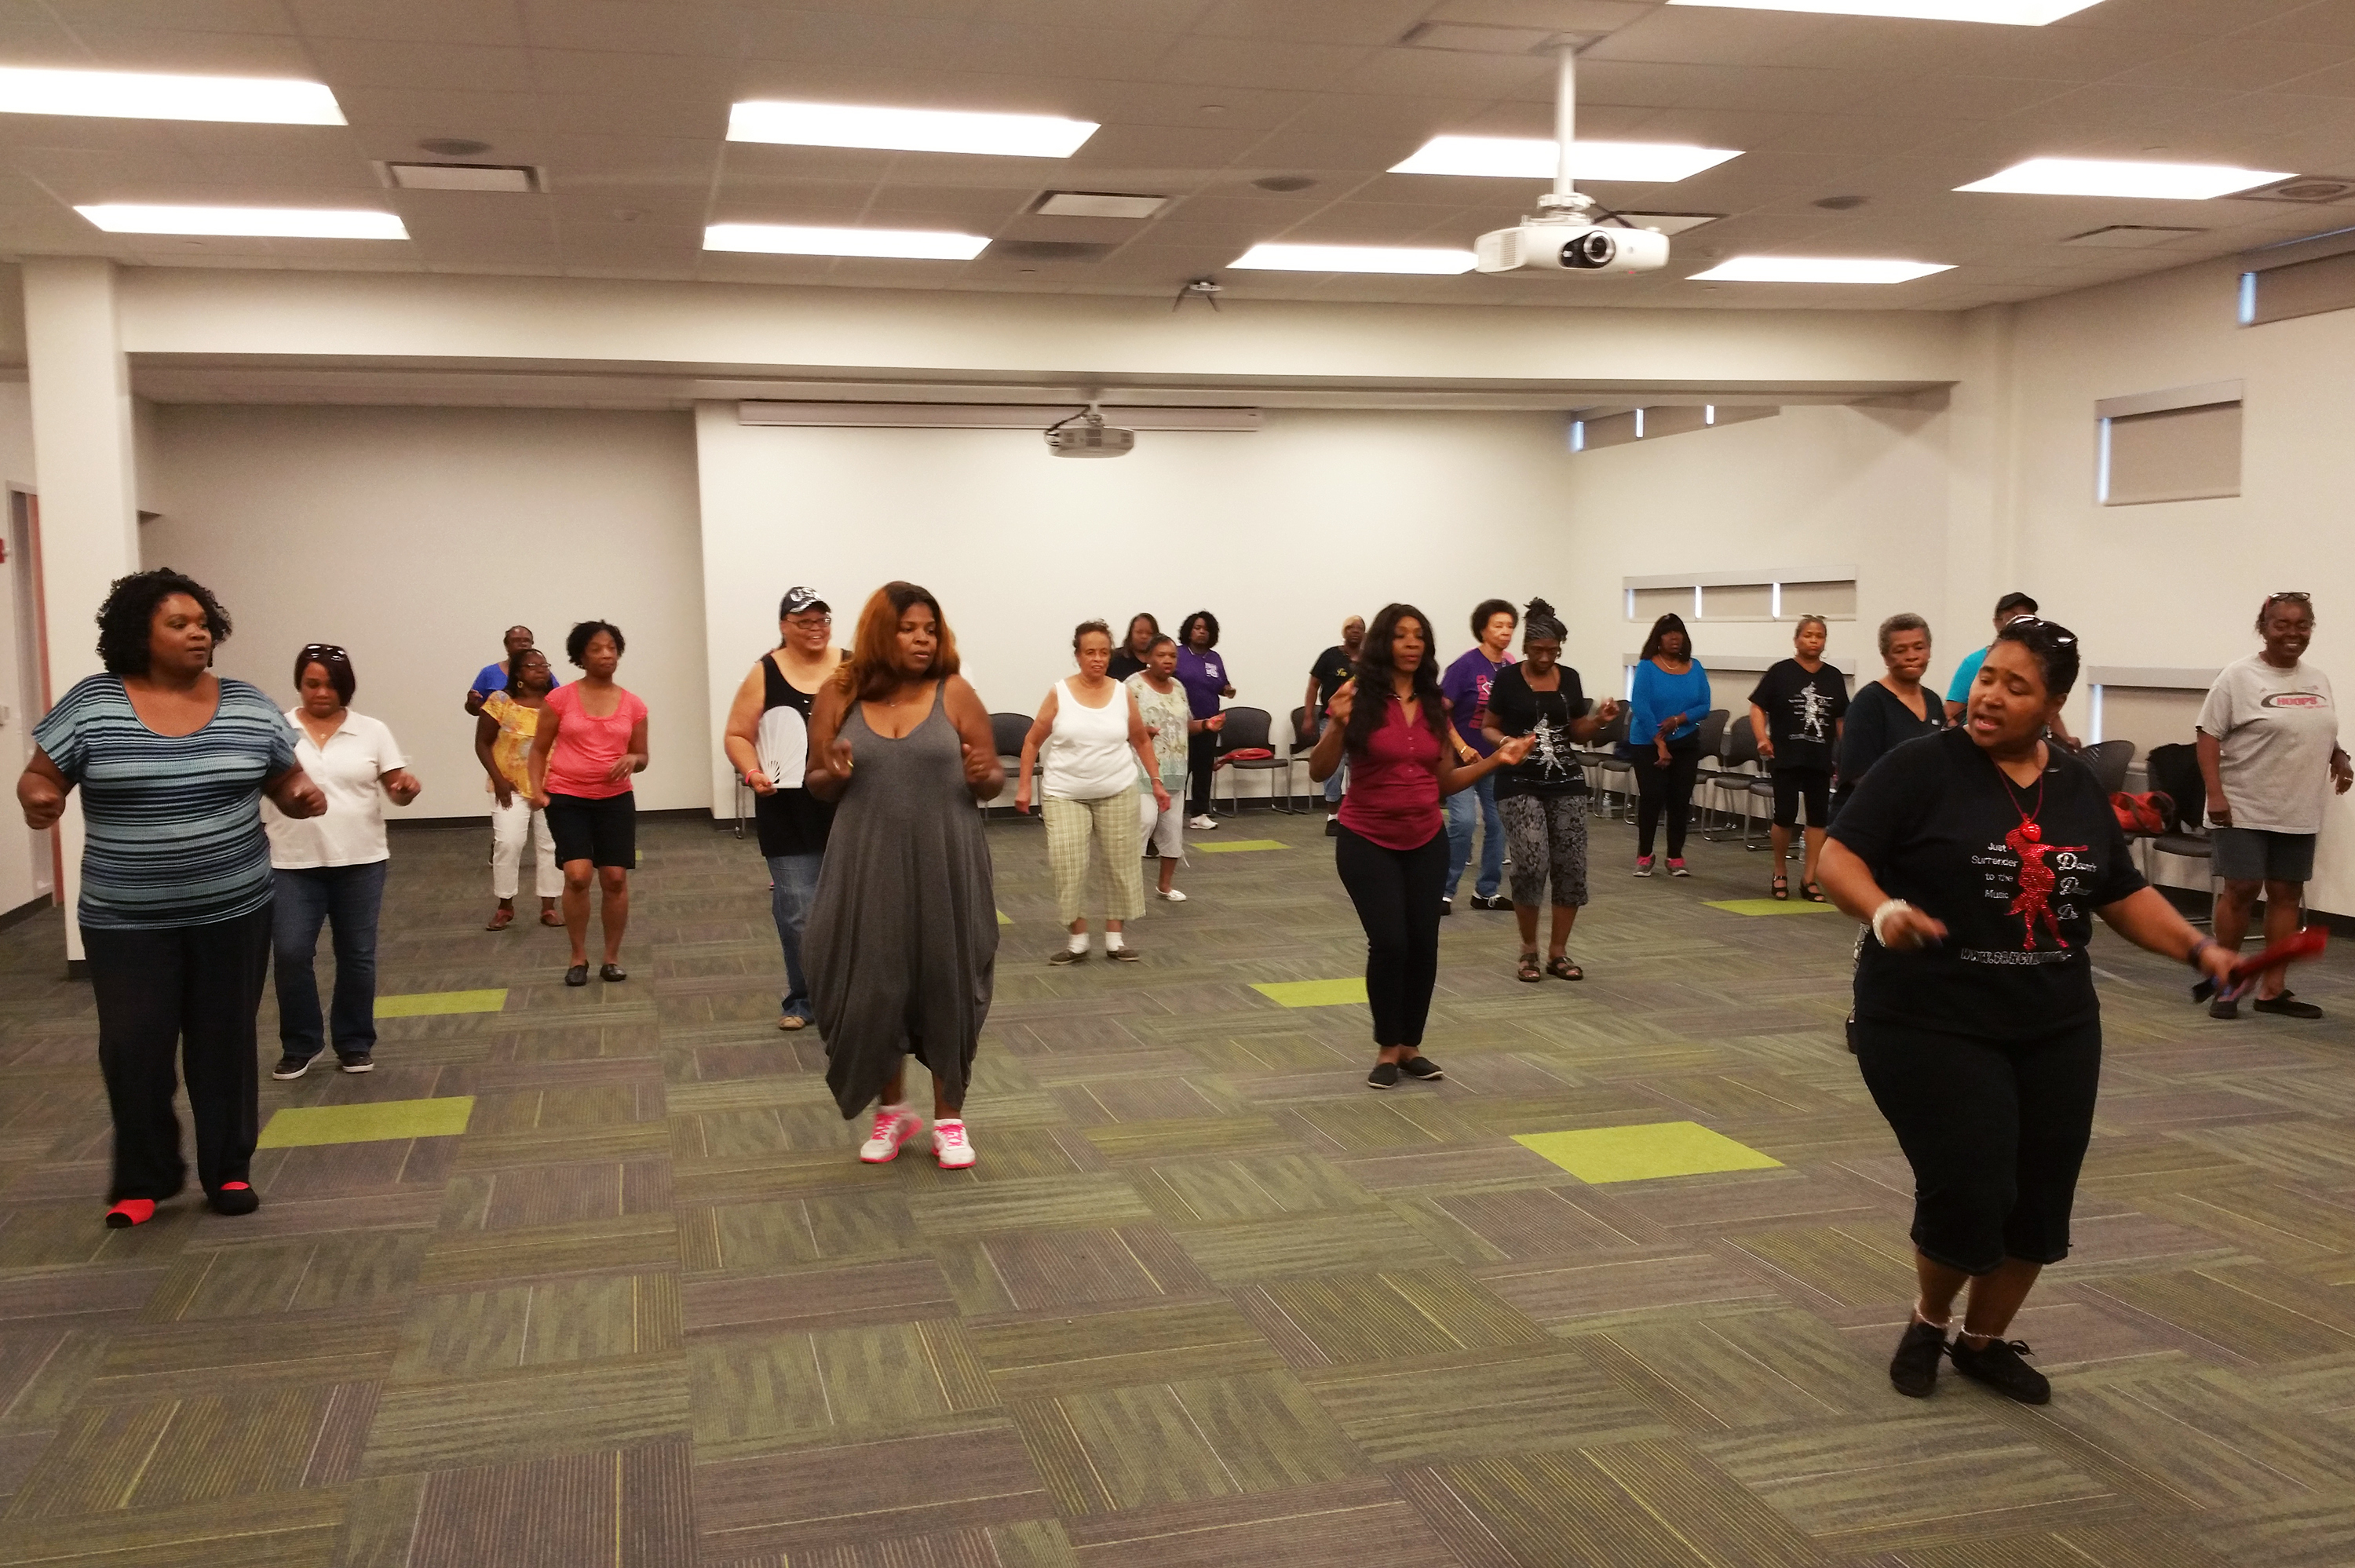 Dawn, 'the Dancin' Deeva,' helps a group of women learn new moves during an adult line dancing class. The Harvey Library offers the free class weekly. (Cheryl Corley/NPR)